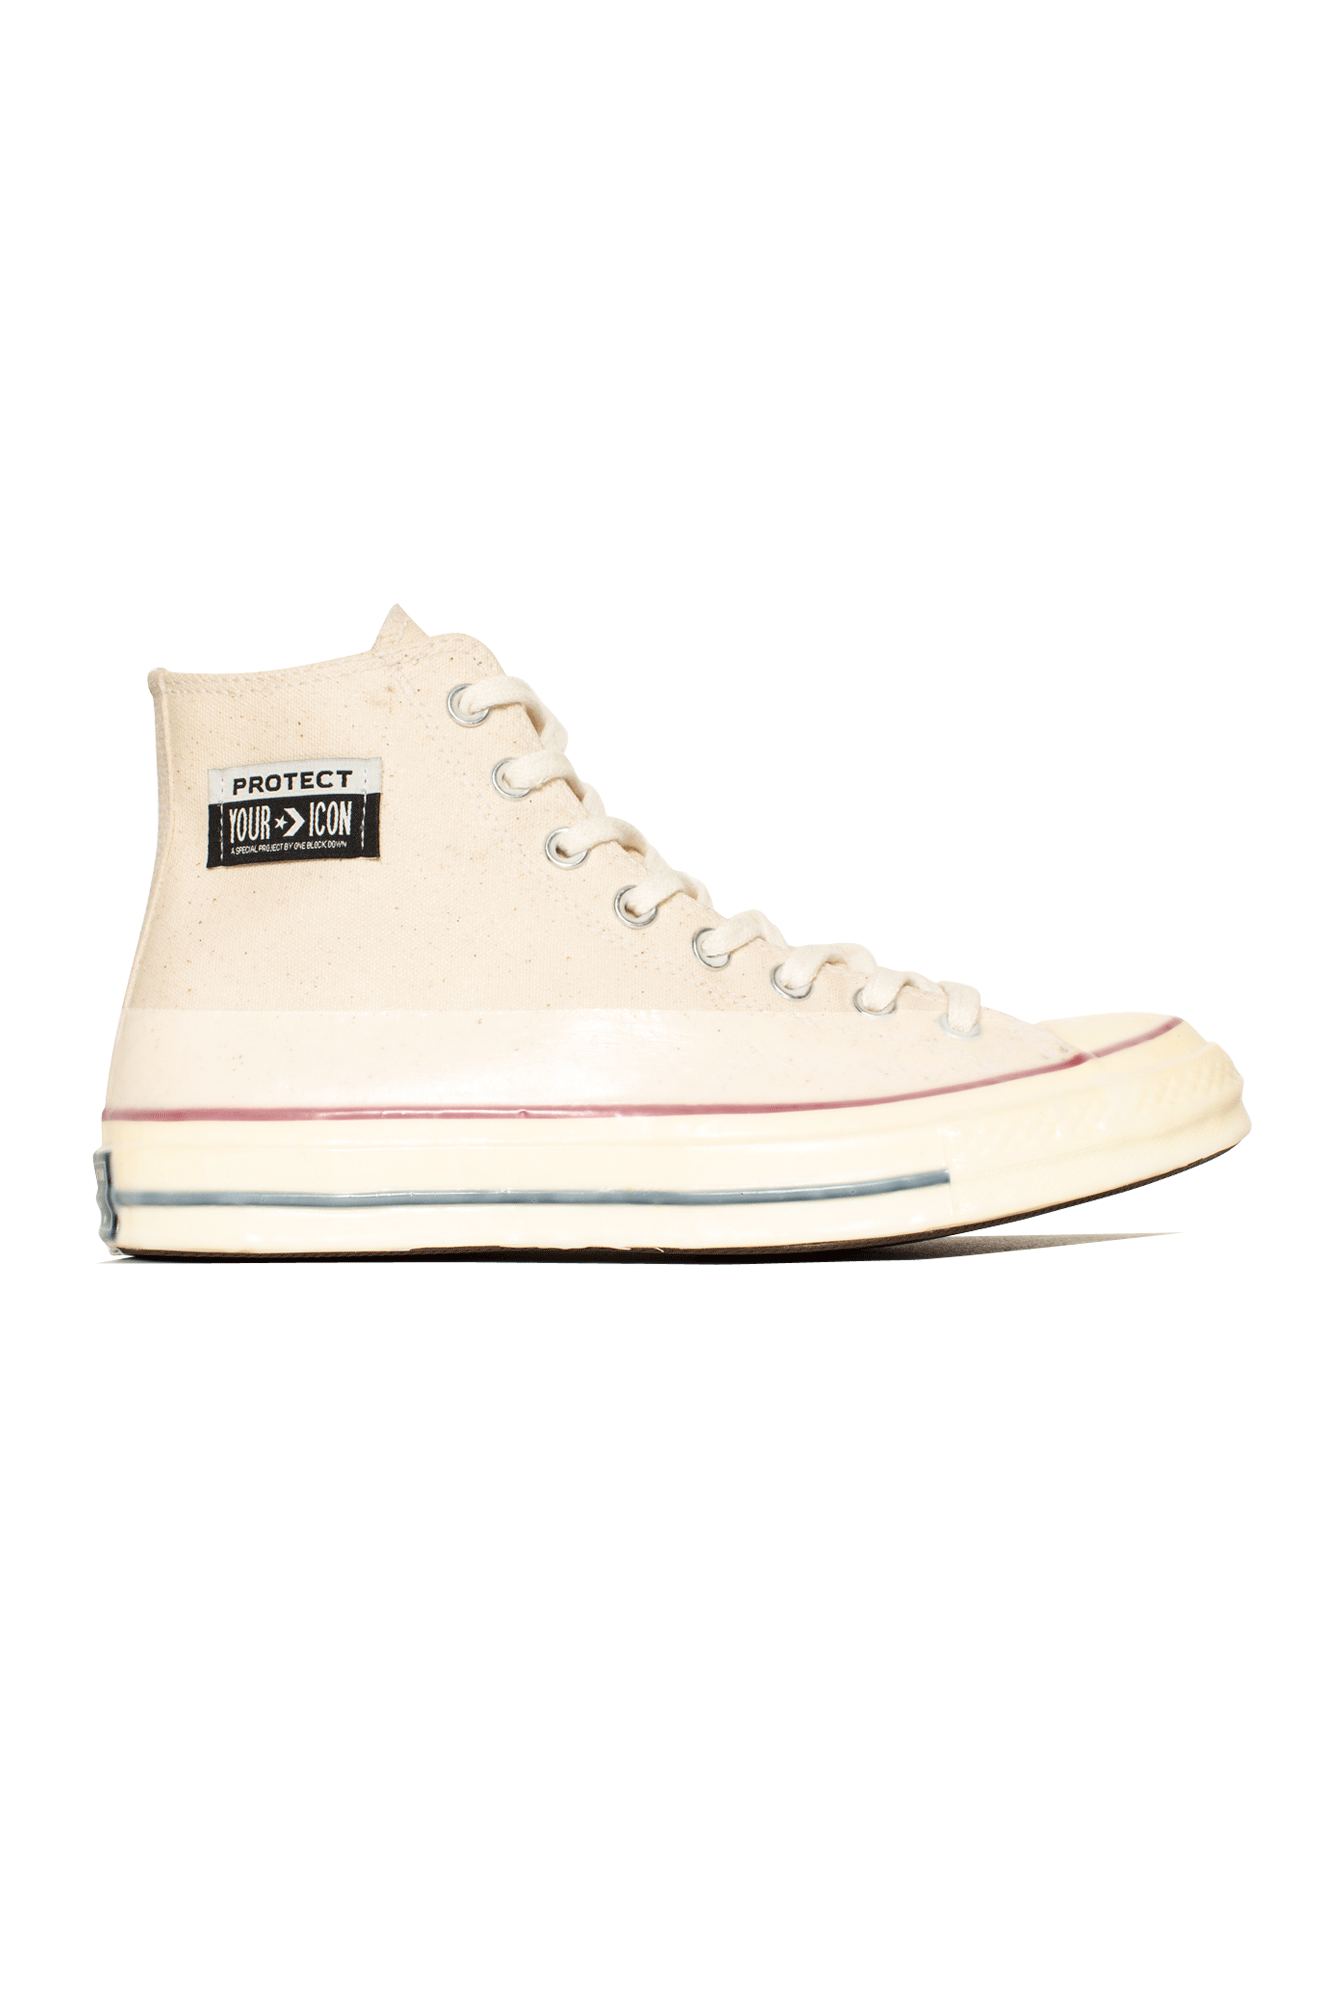 "Converse Sneakers Chuck 70 Hi x One Block Down ""Protect Your Icon"" Bianco 162053COBD#000#PRC#4,5 - One Block Down"